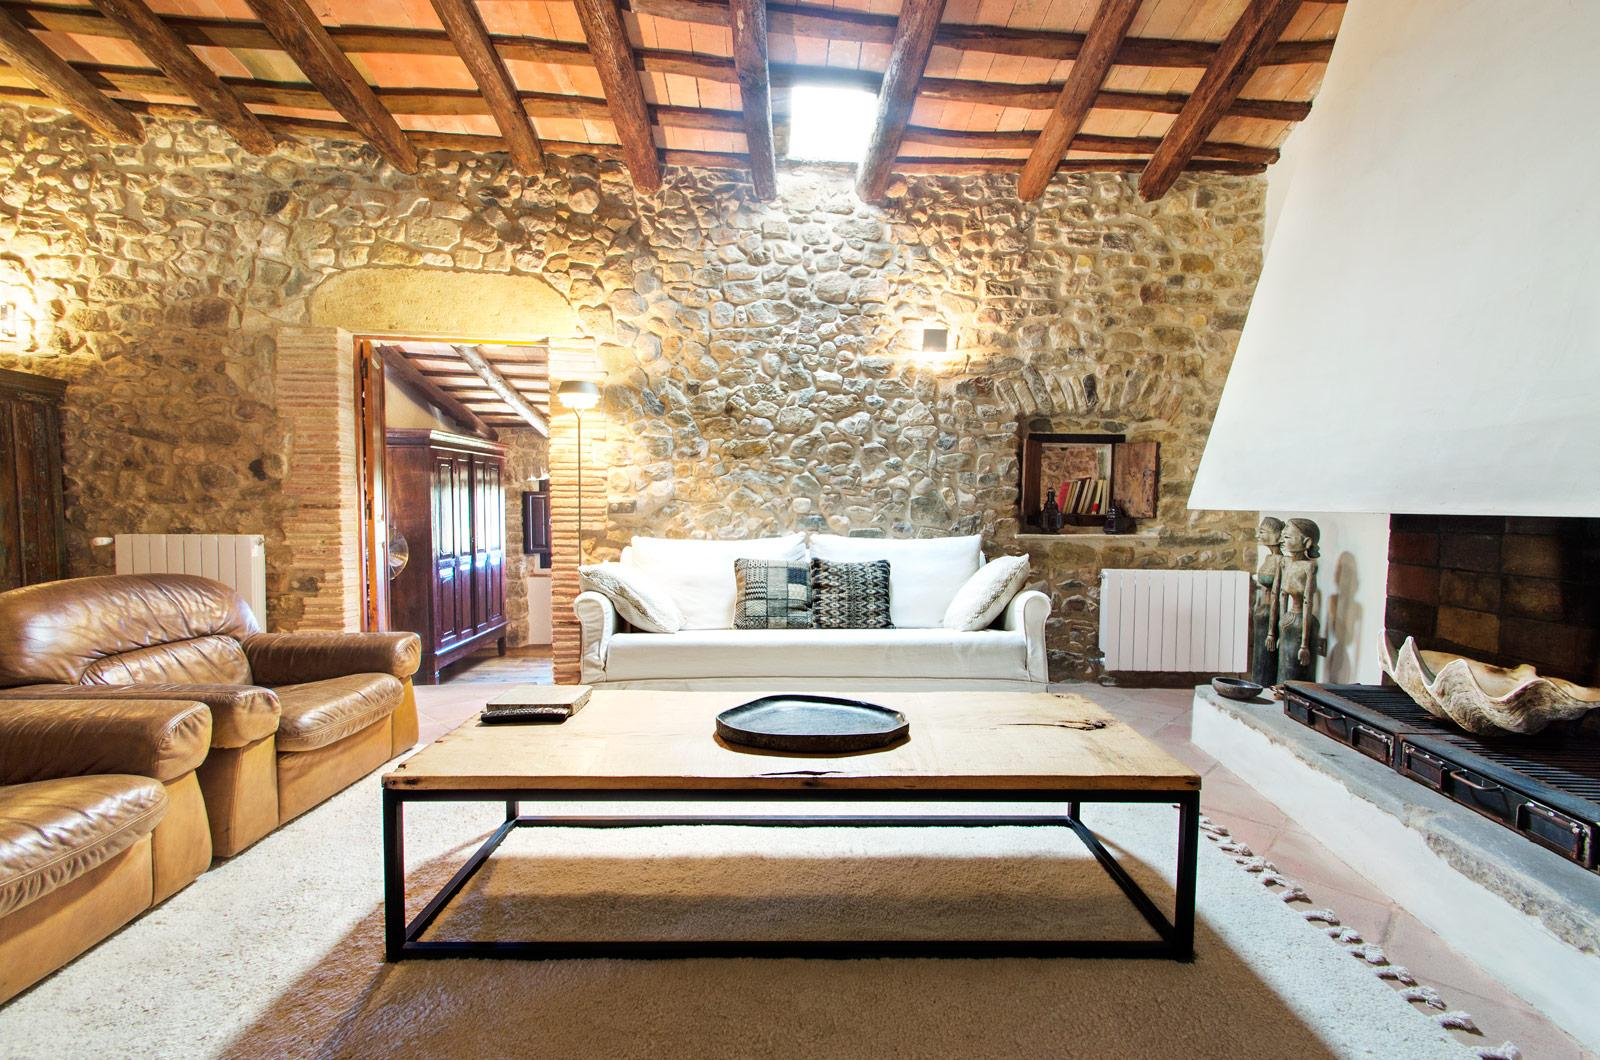 8. Villa for sale in Girona - Traditional Masia, Catalonia country house, for sale in Girona